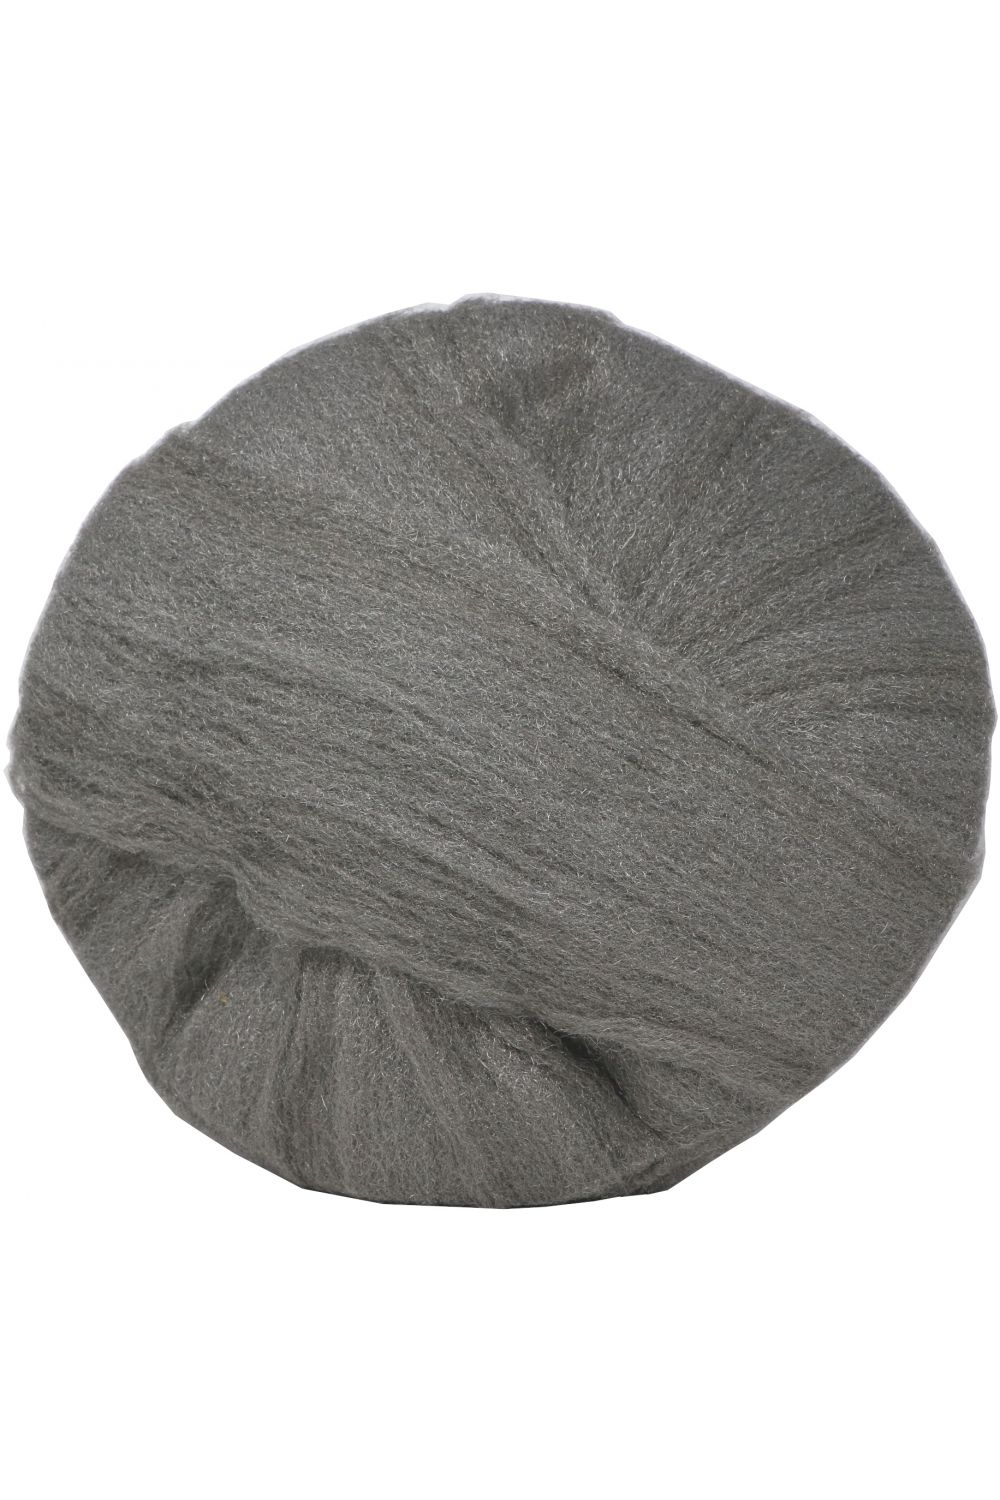 "Medium Fine  Steel Wool Grade-0 - 16"" Pad"